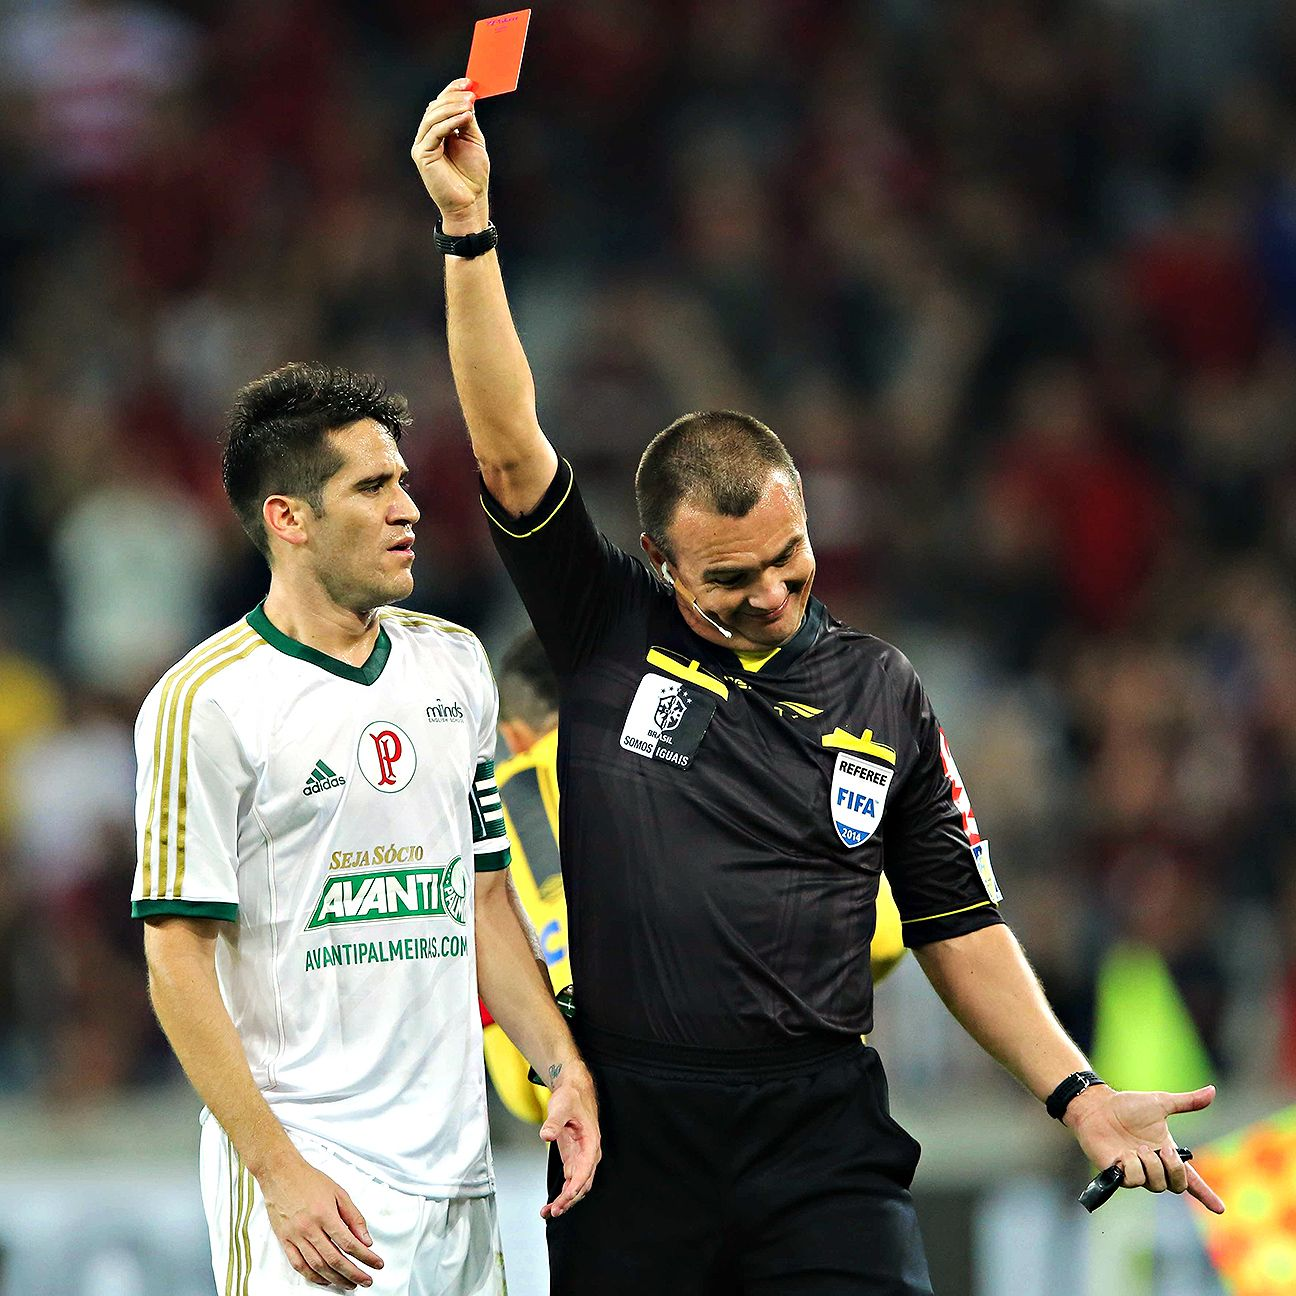 A controversial refereeing decision seems to happen each week in Brazilian football.